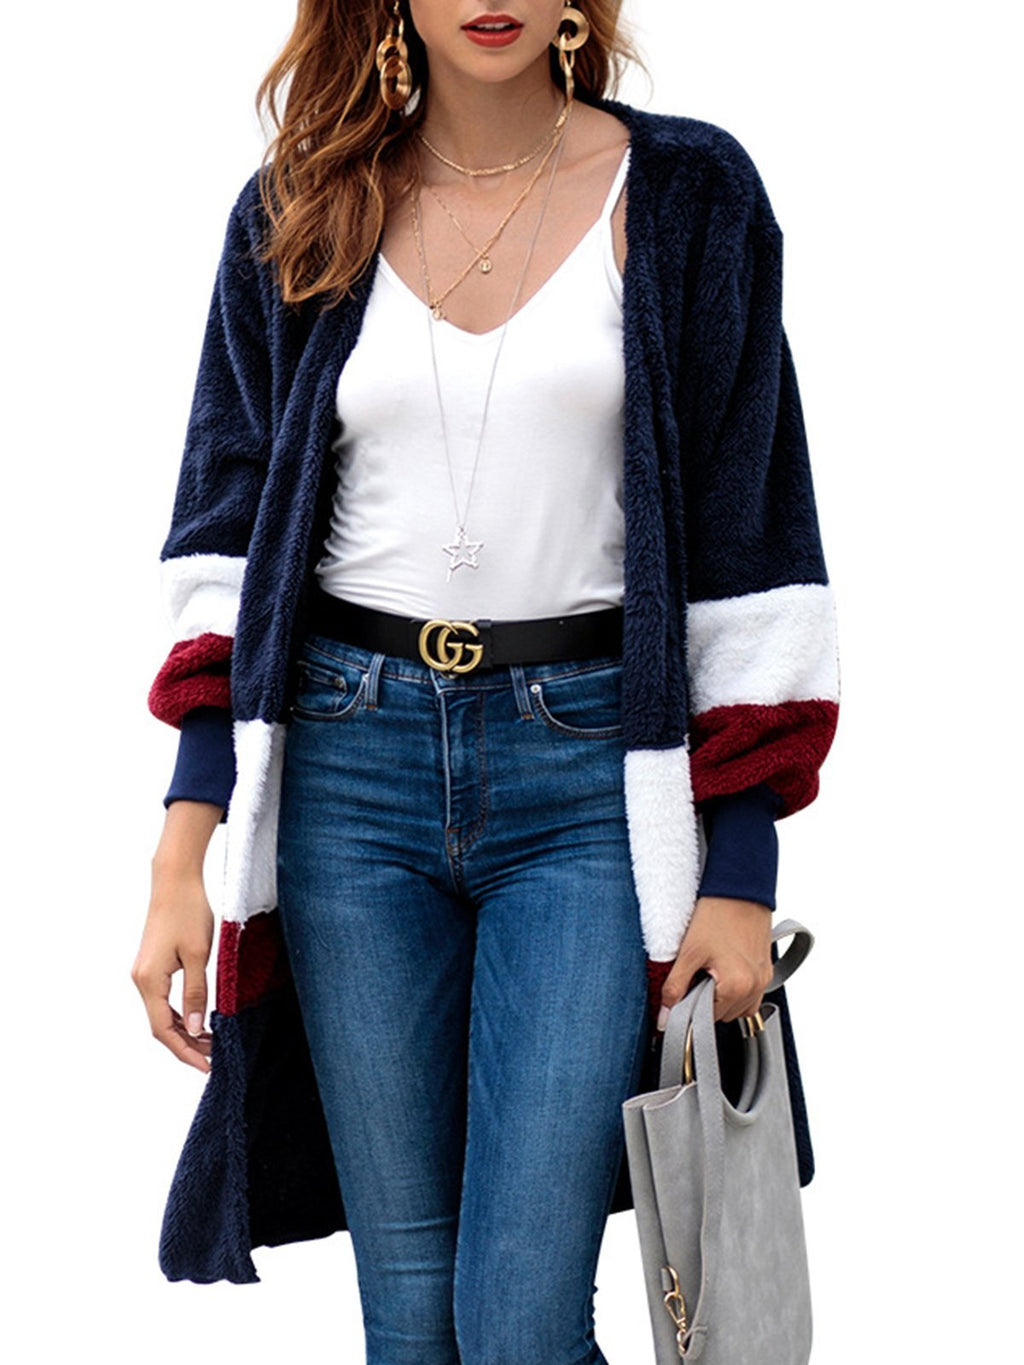 Striped Cashmere Knitted Elegant Winter Color-block Teddy Bear Cardigan